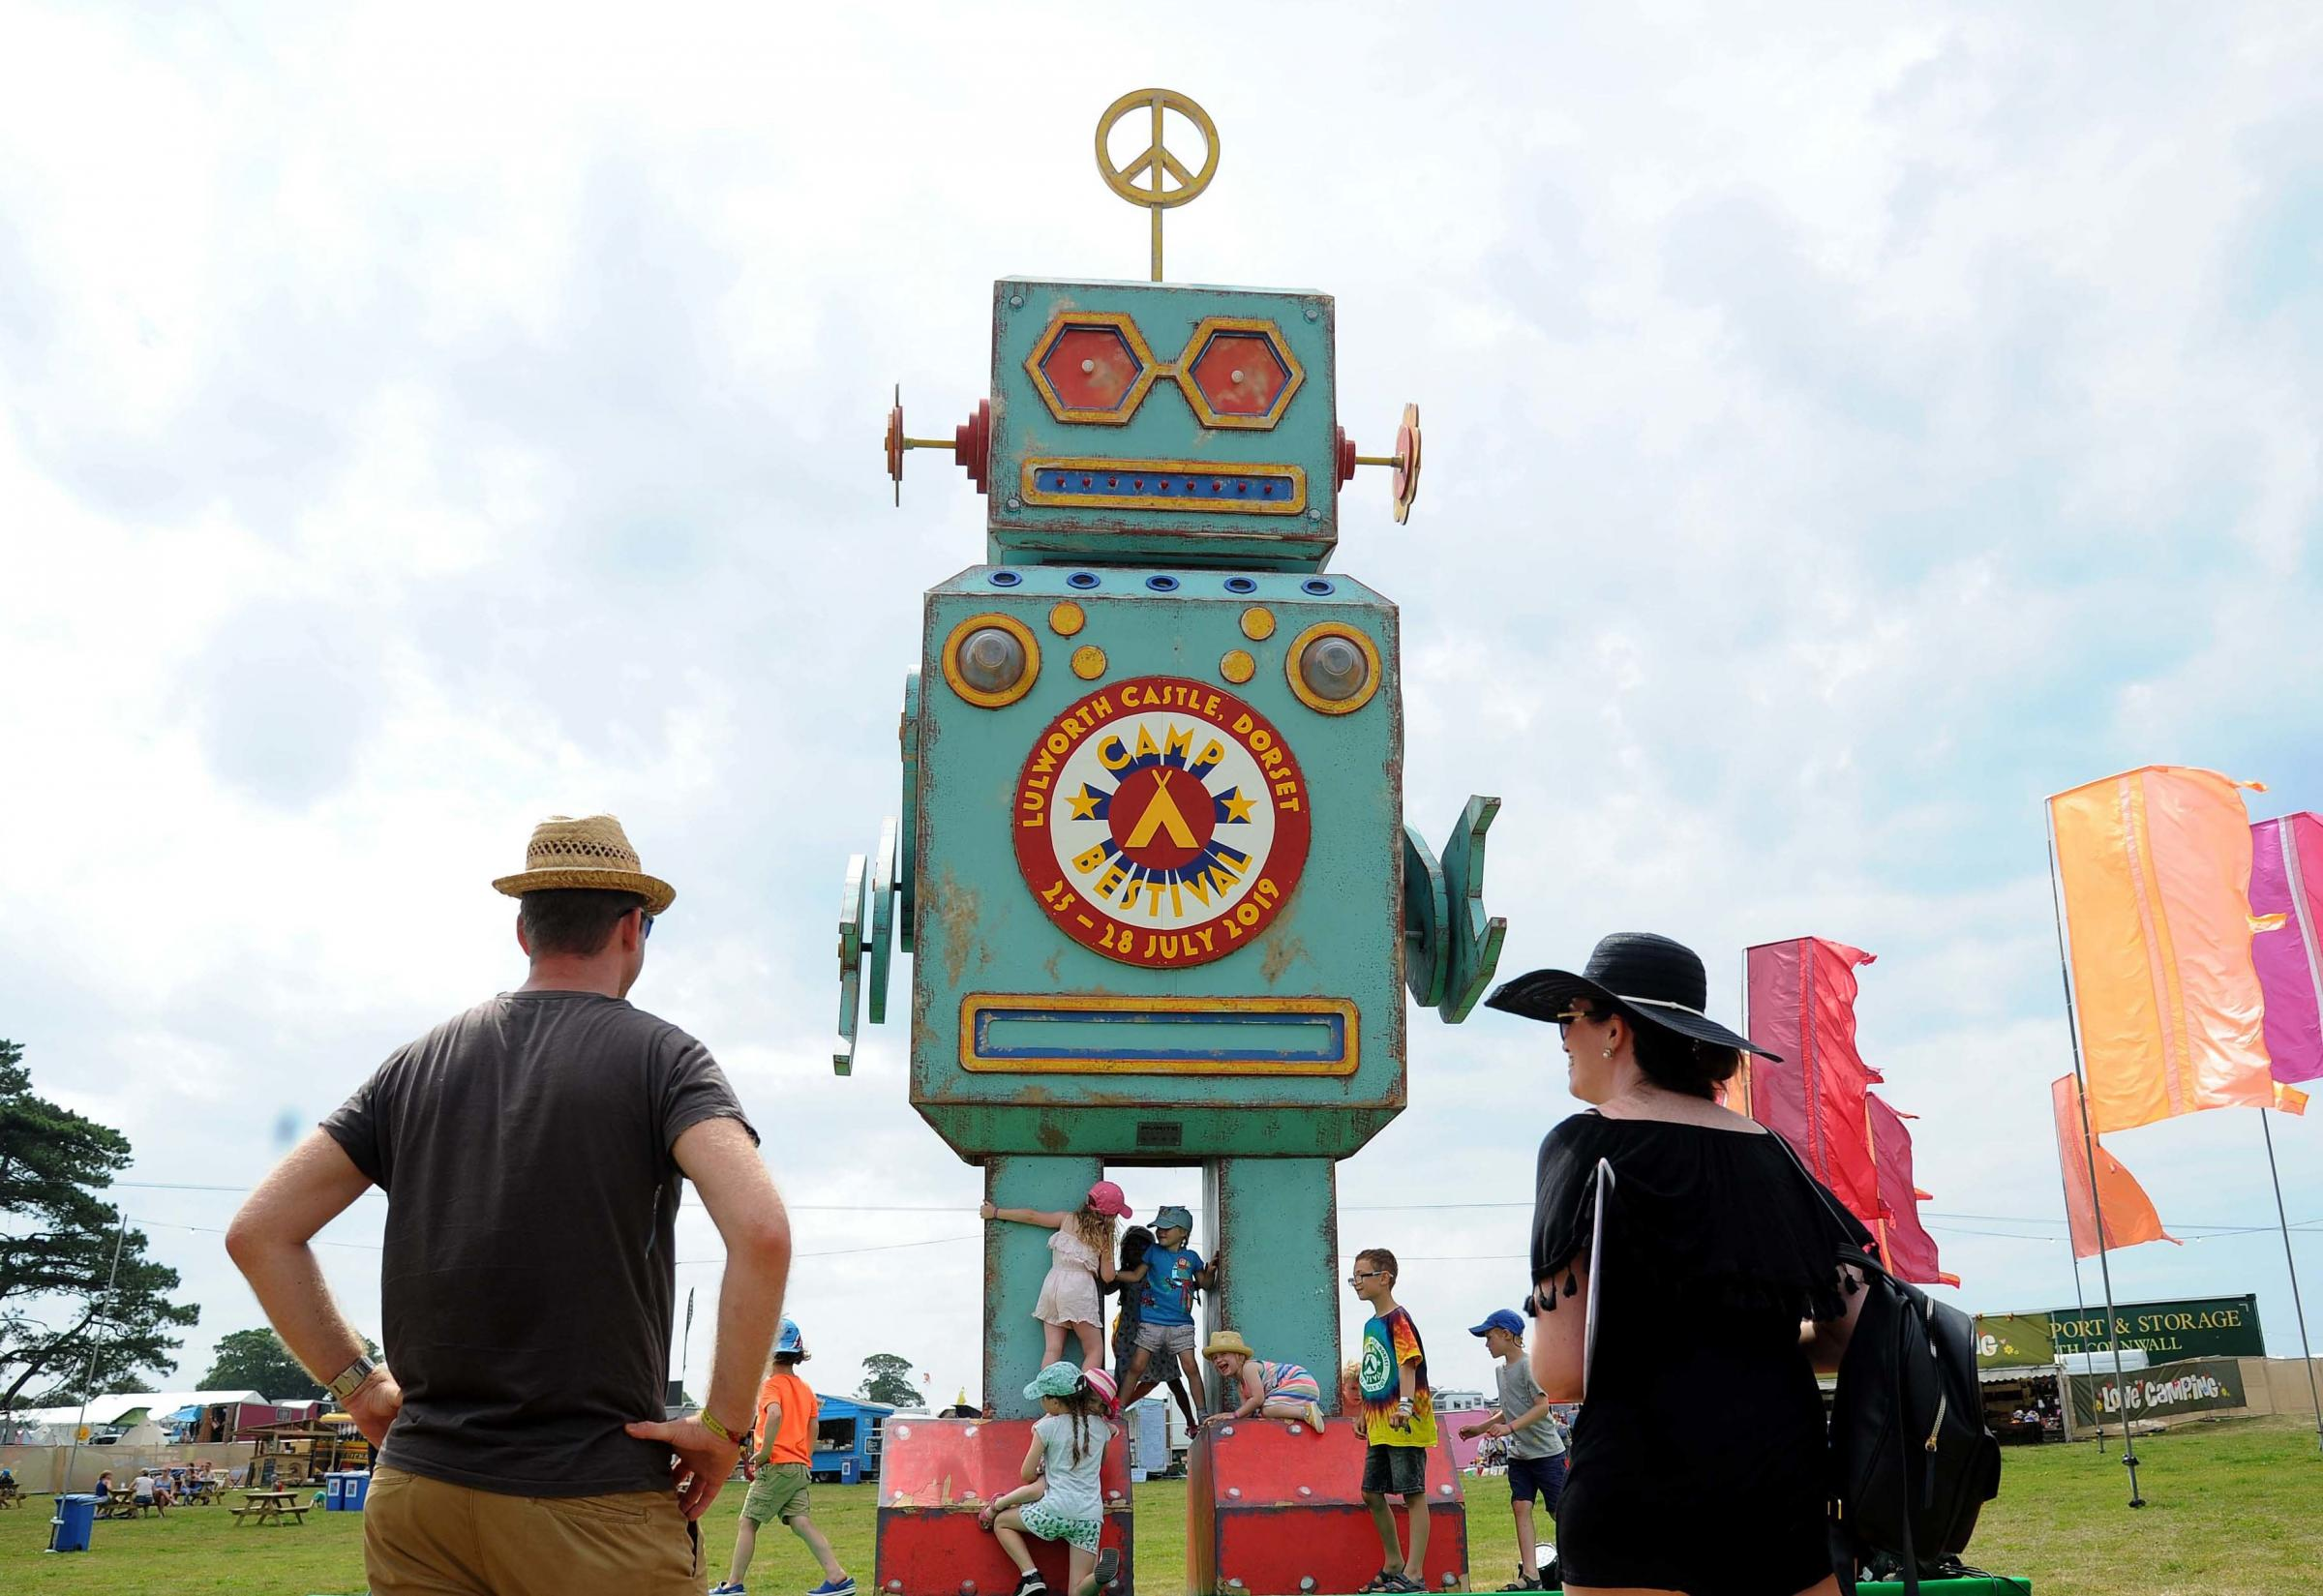 People arrive at Camp Bestival, Love Robot, 25/07/19, Picture: FINNBARR WEBSTER/F30371.